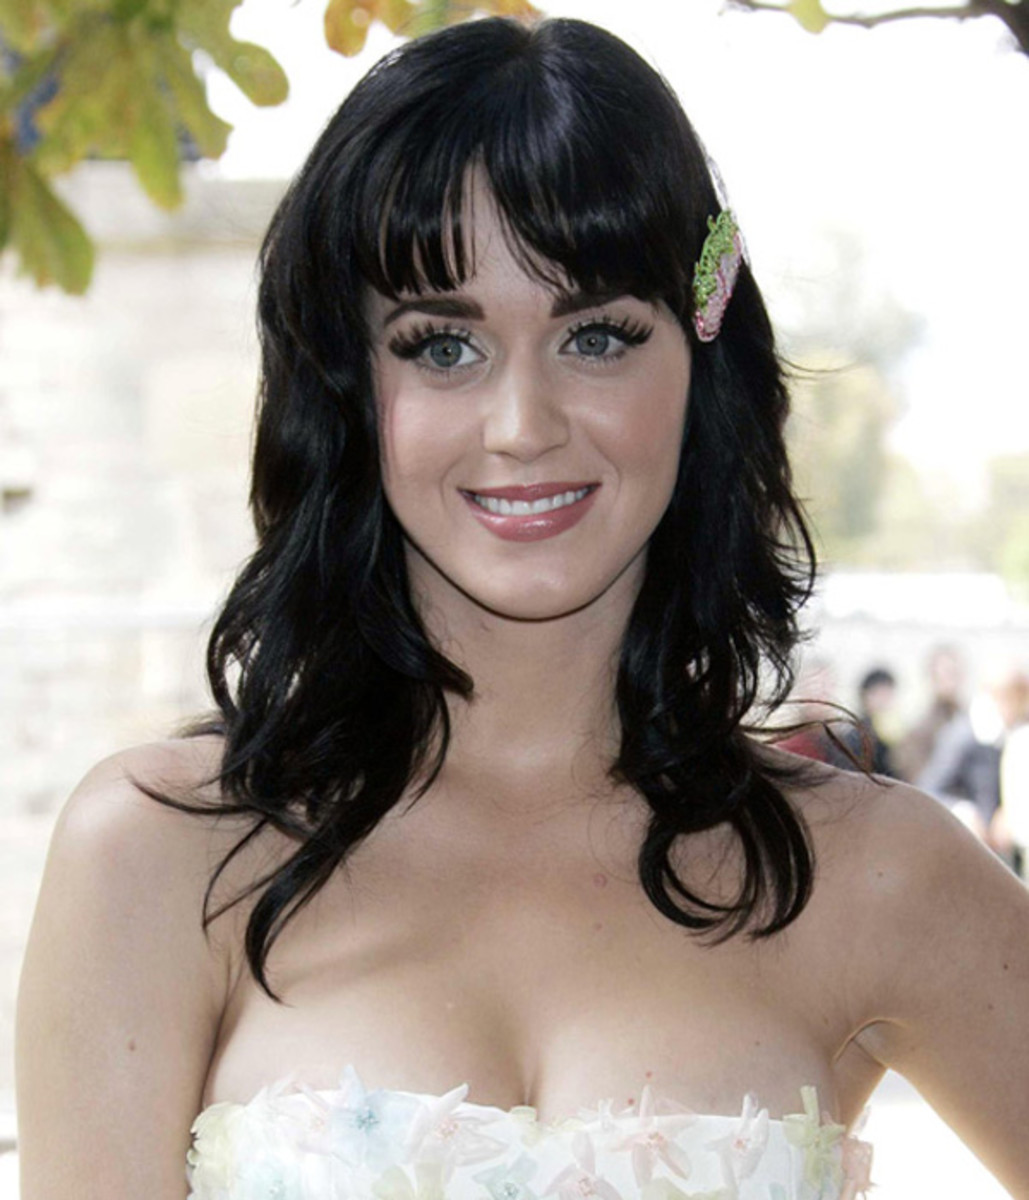 Katy-Perry-I-Kissed-a-Girl